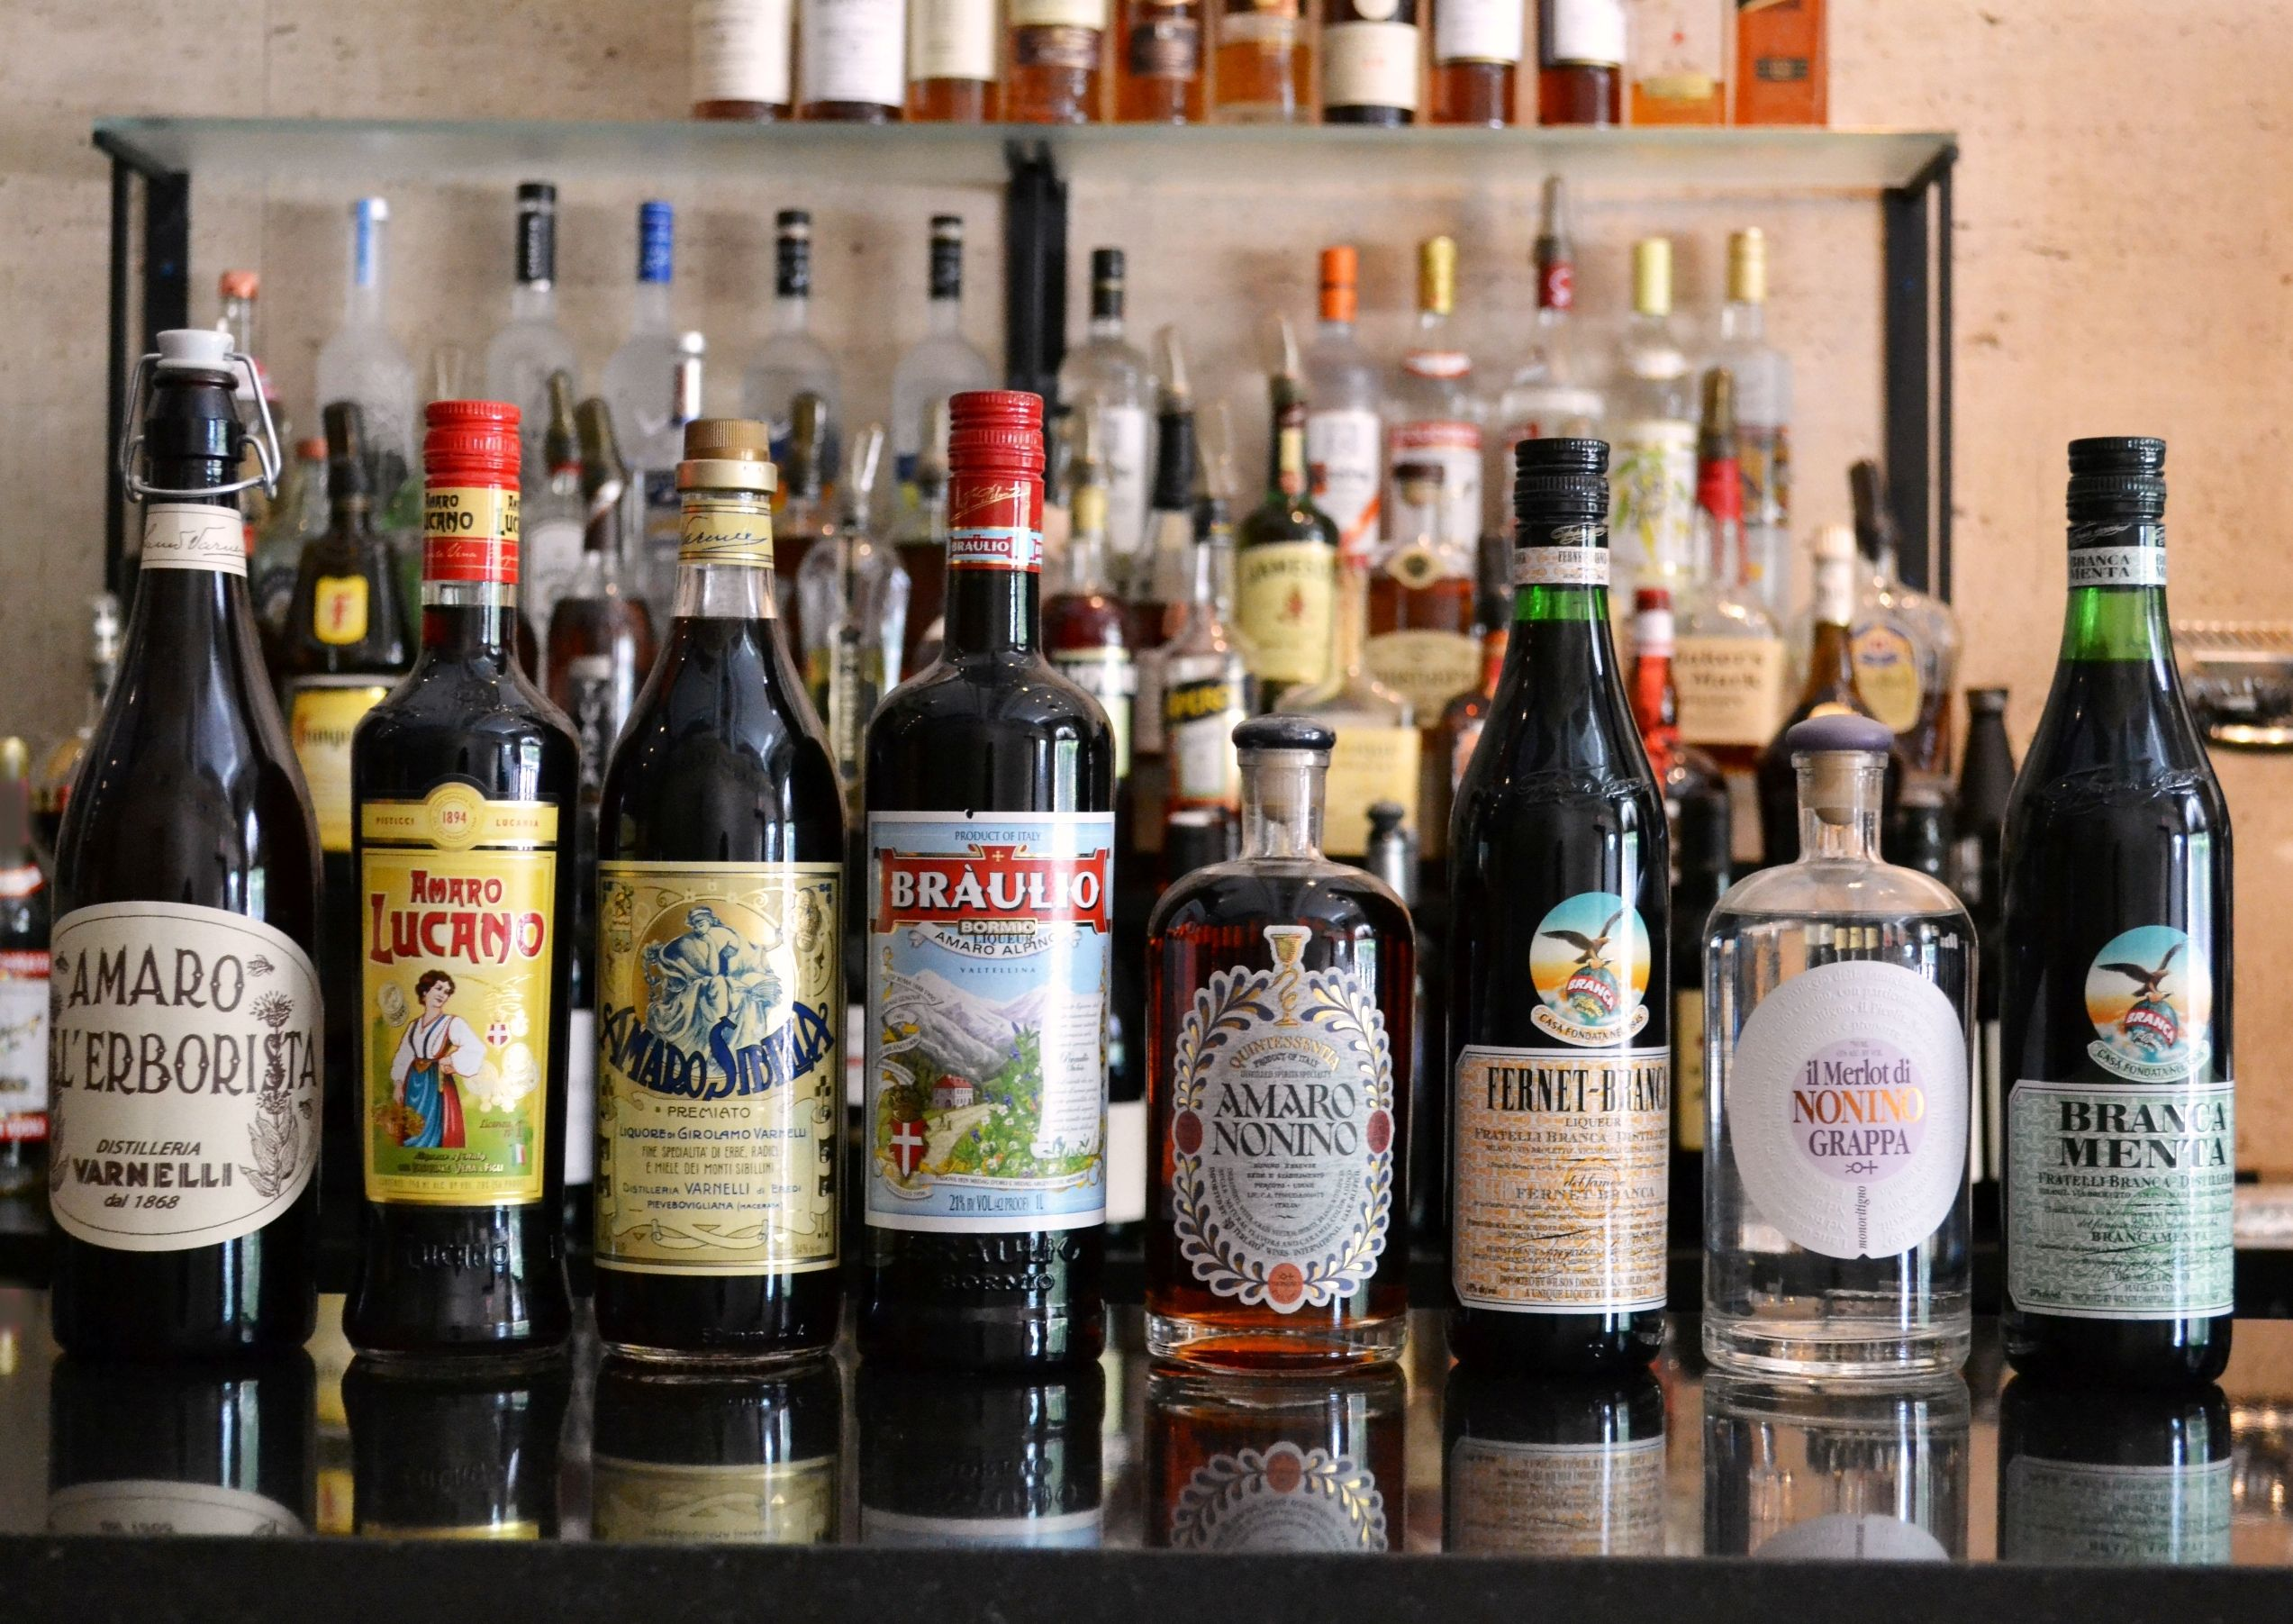 We've got 8 different Amaros here at Teatro! These Italian liqueurs make for the perfect after-dinner drink!